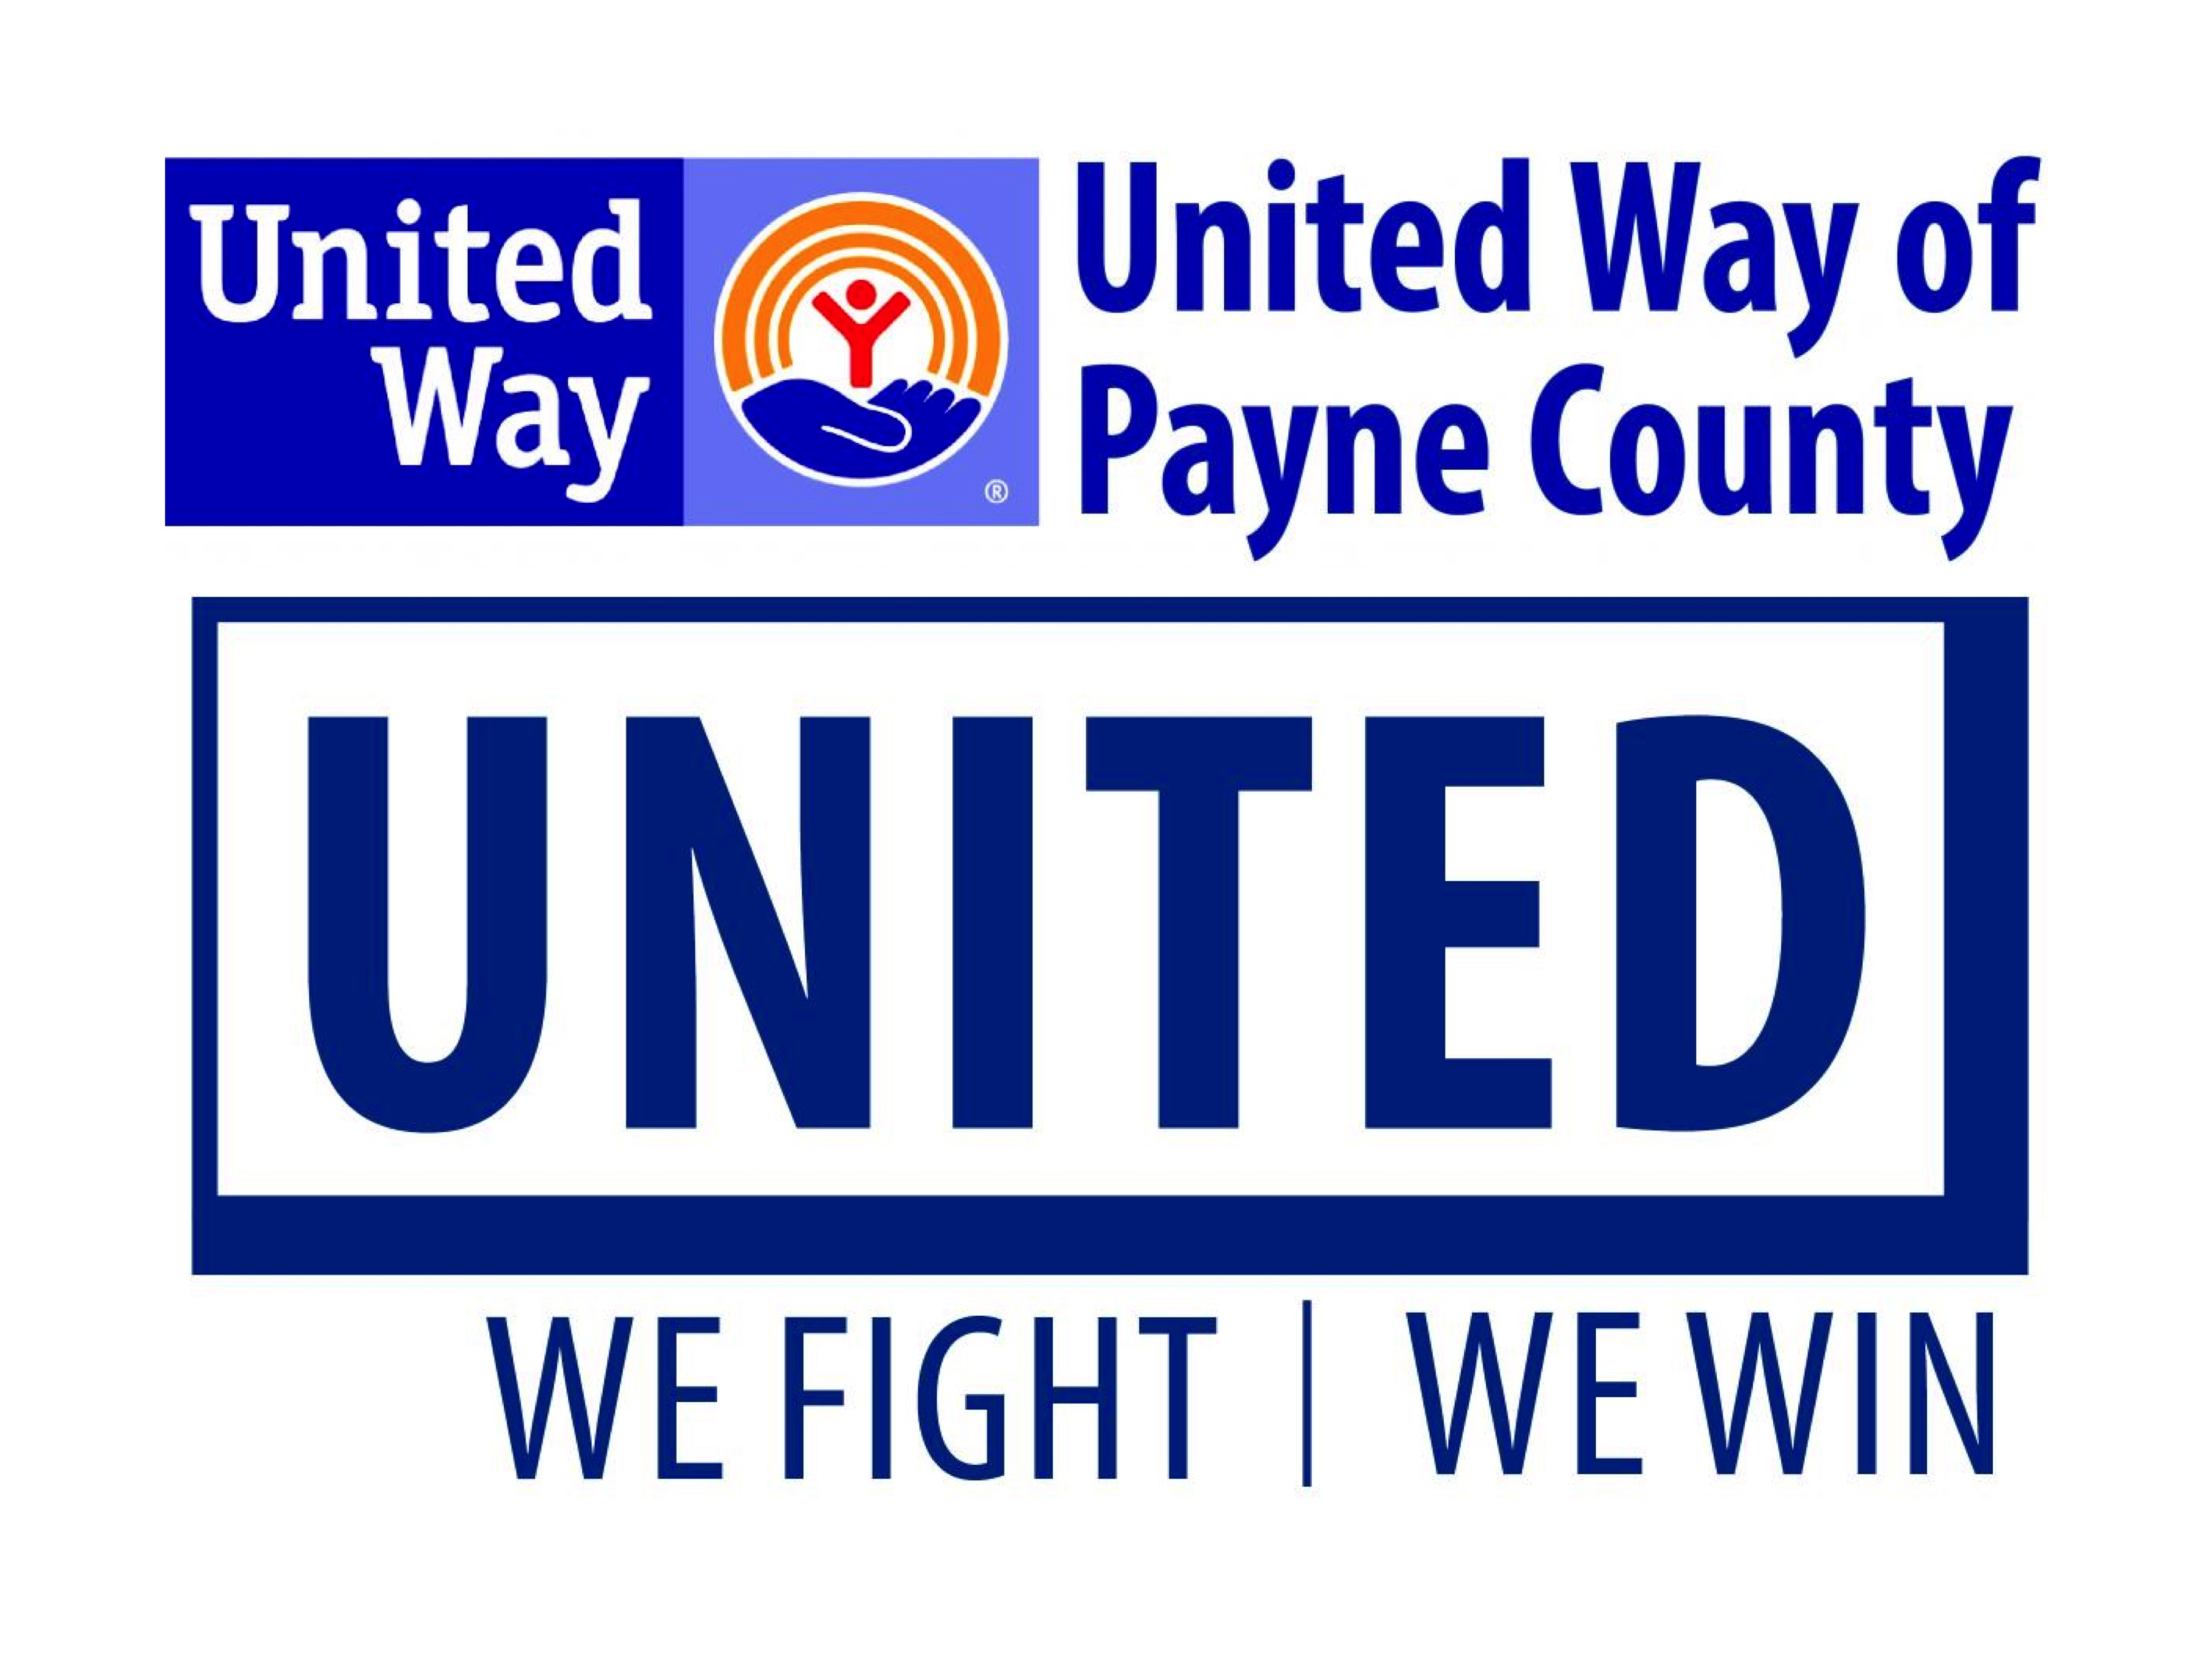 United Way of Payne County